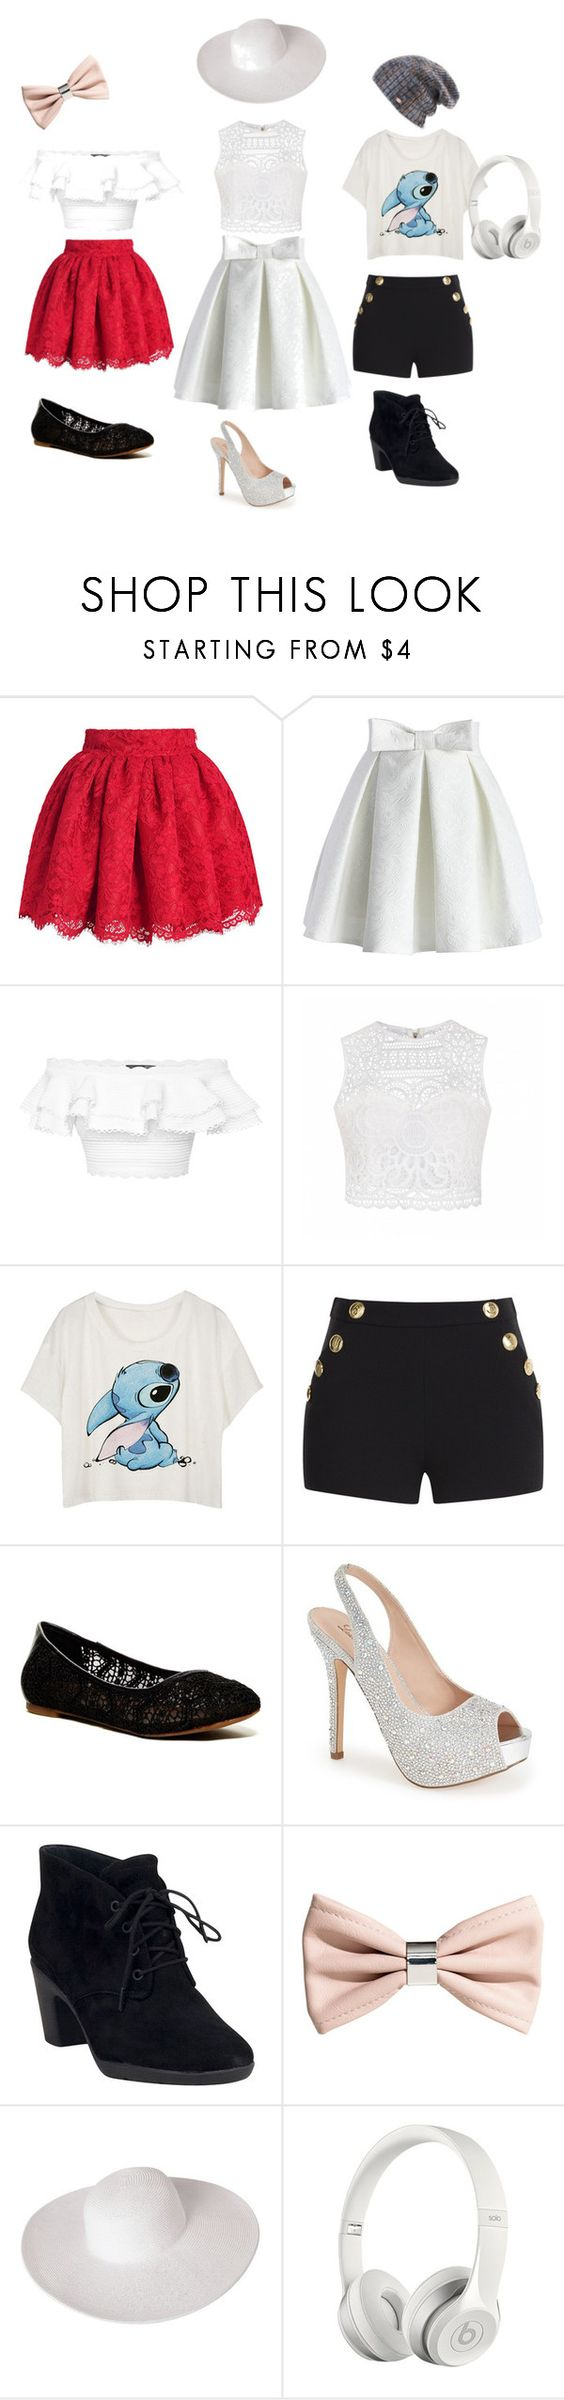 """""""Girly/Classy/And ME"""" by pinklovebooks ❤ liked on Polyvore featuring Chicwish, Alexander McQueen, Ally Fashion, Boutique Moschino, Lucky Brand, Lauren Lorraine, Clarks, H&M, Dorfman Pacific and Spacecraft"""